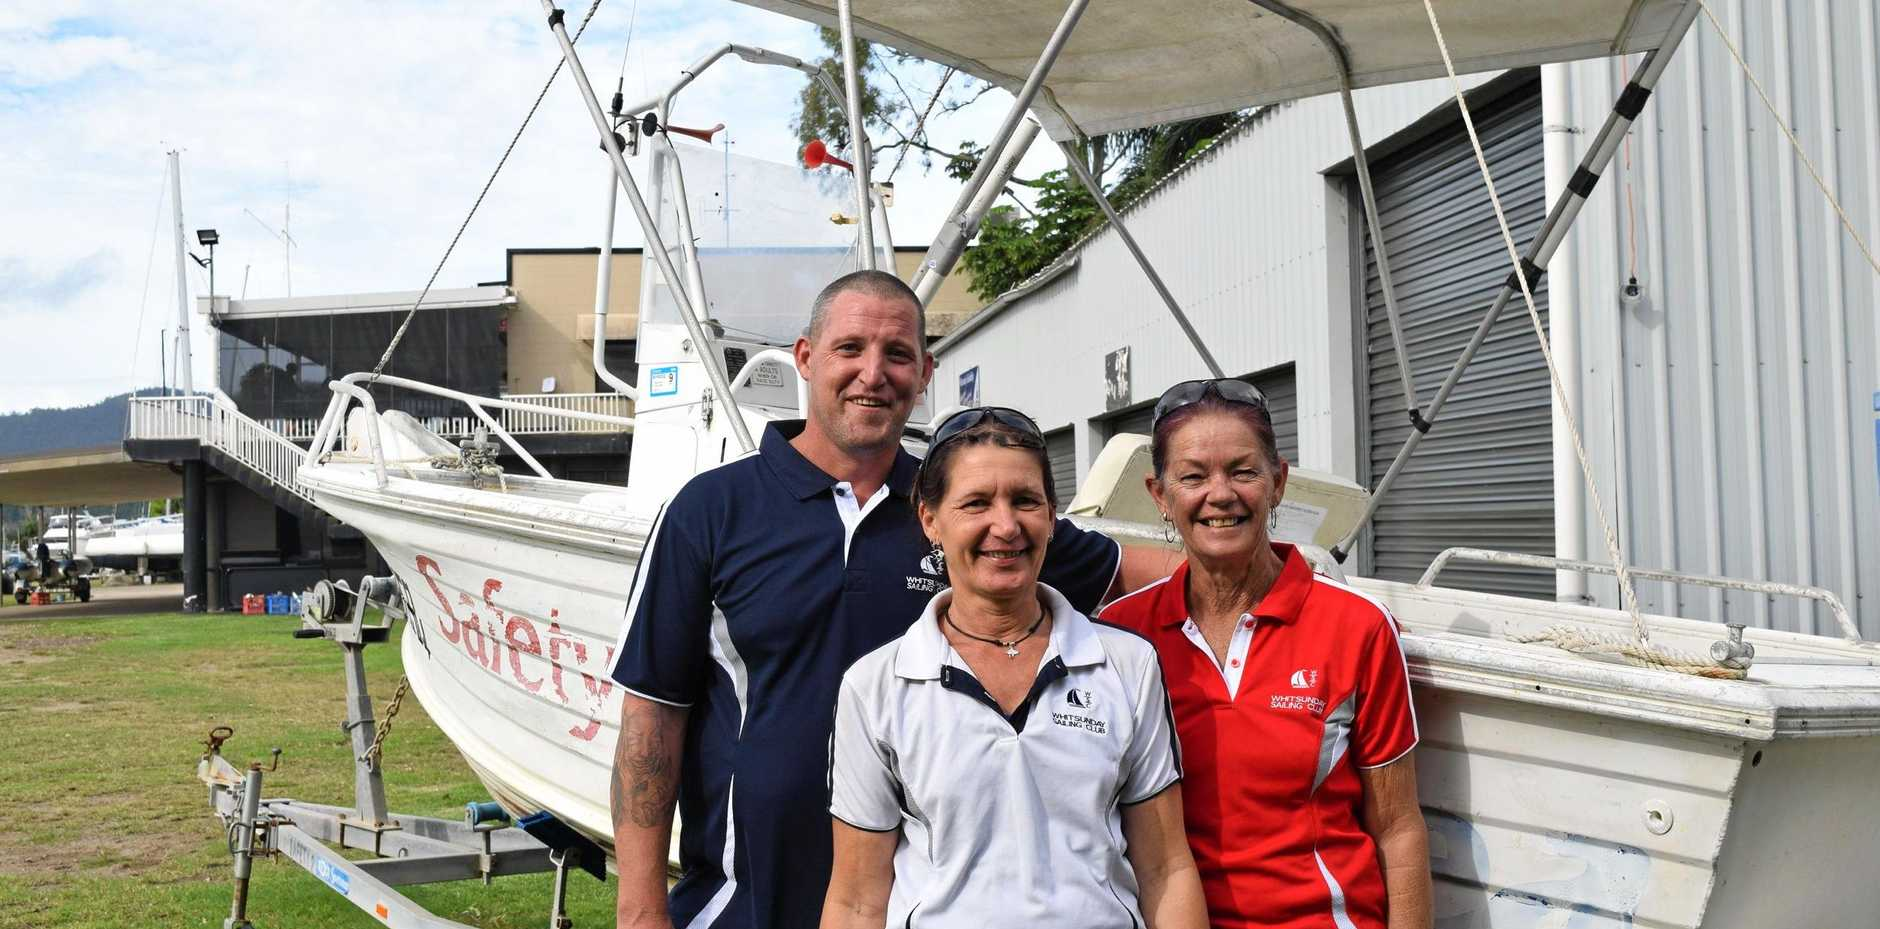 MONSTER WEEKEND: Whitsunday Sailing Club's Danny O'Brian, Leonie Matthews and Darvey Schiller with one of the boats for sale at the Monster Car Boot Sale this Sunday.